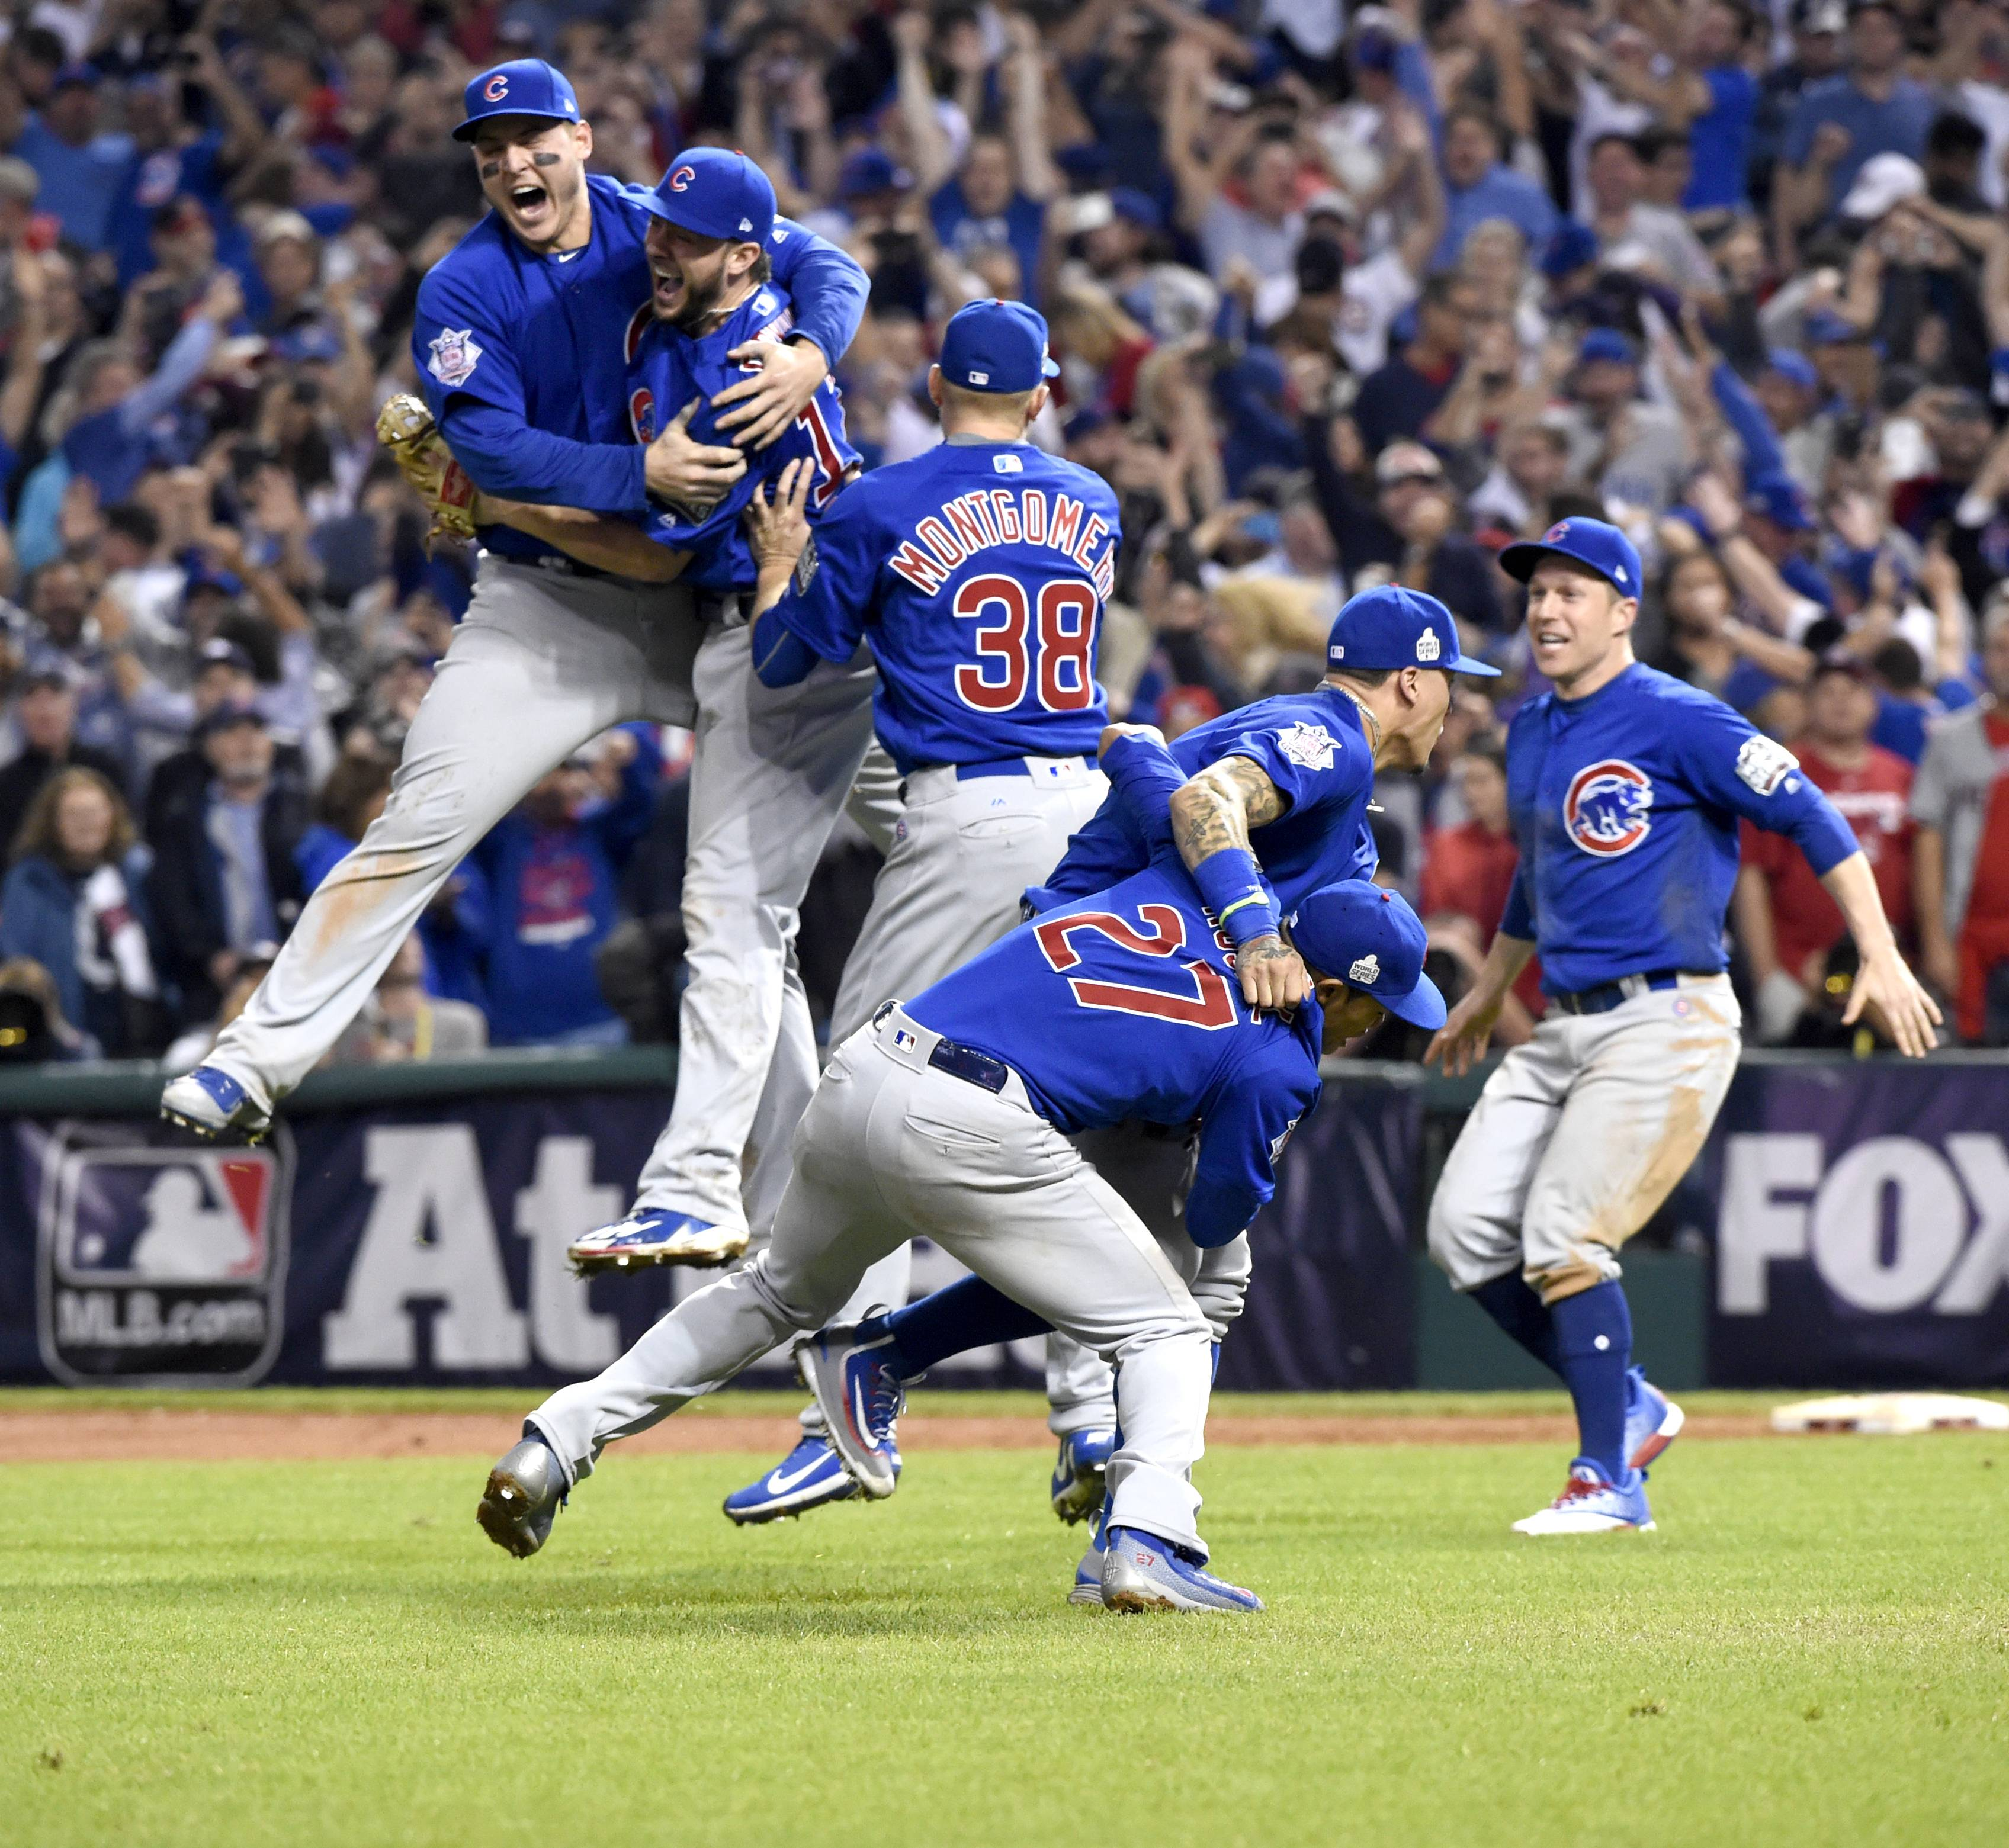 The Chicago Cubs celebrate their win during Game 7 of baseball's World Series in Cleveland.